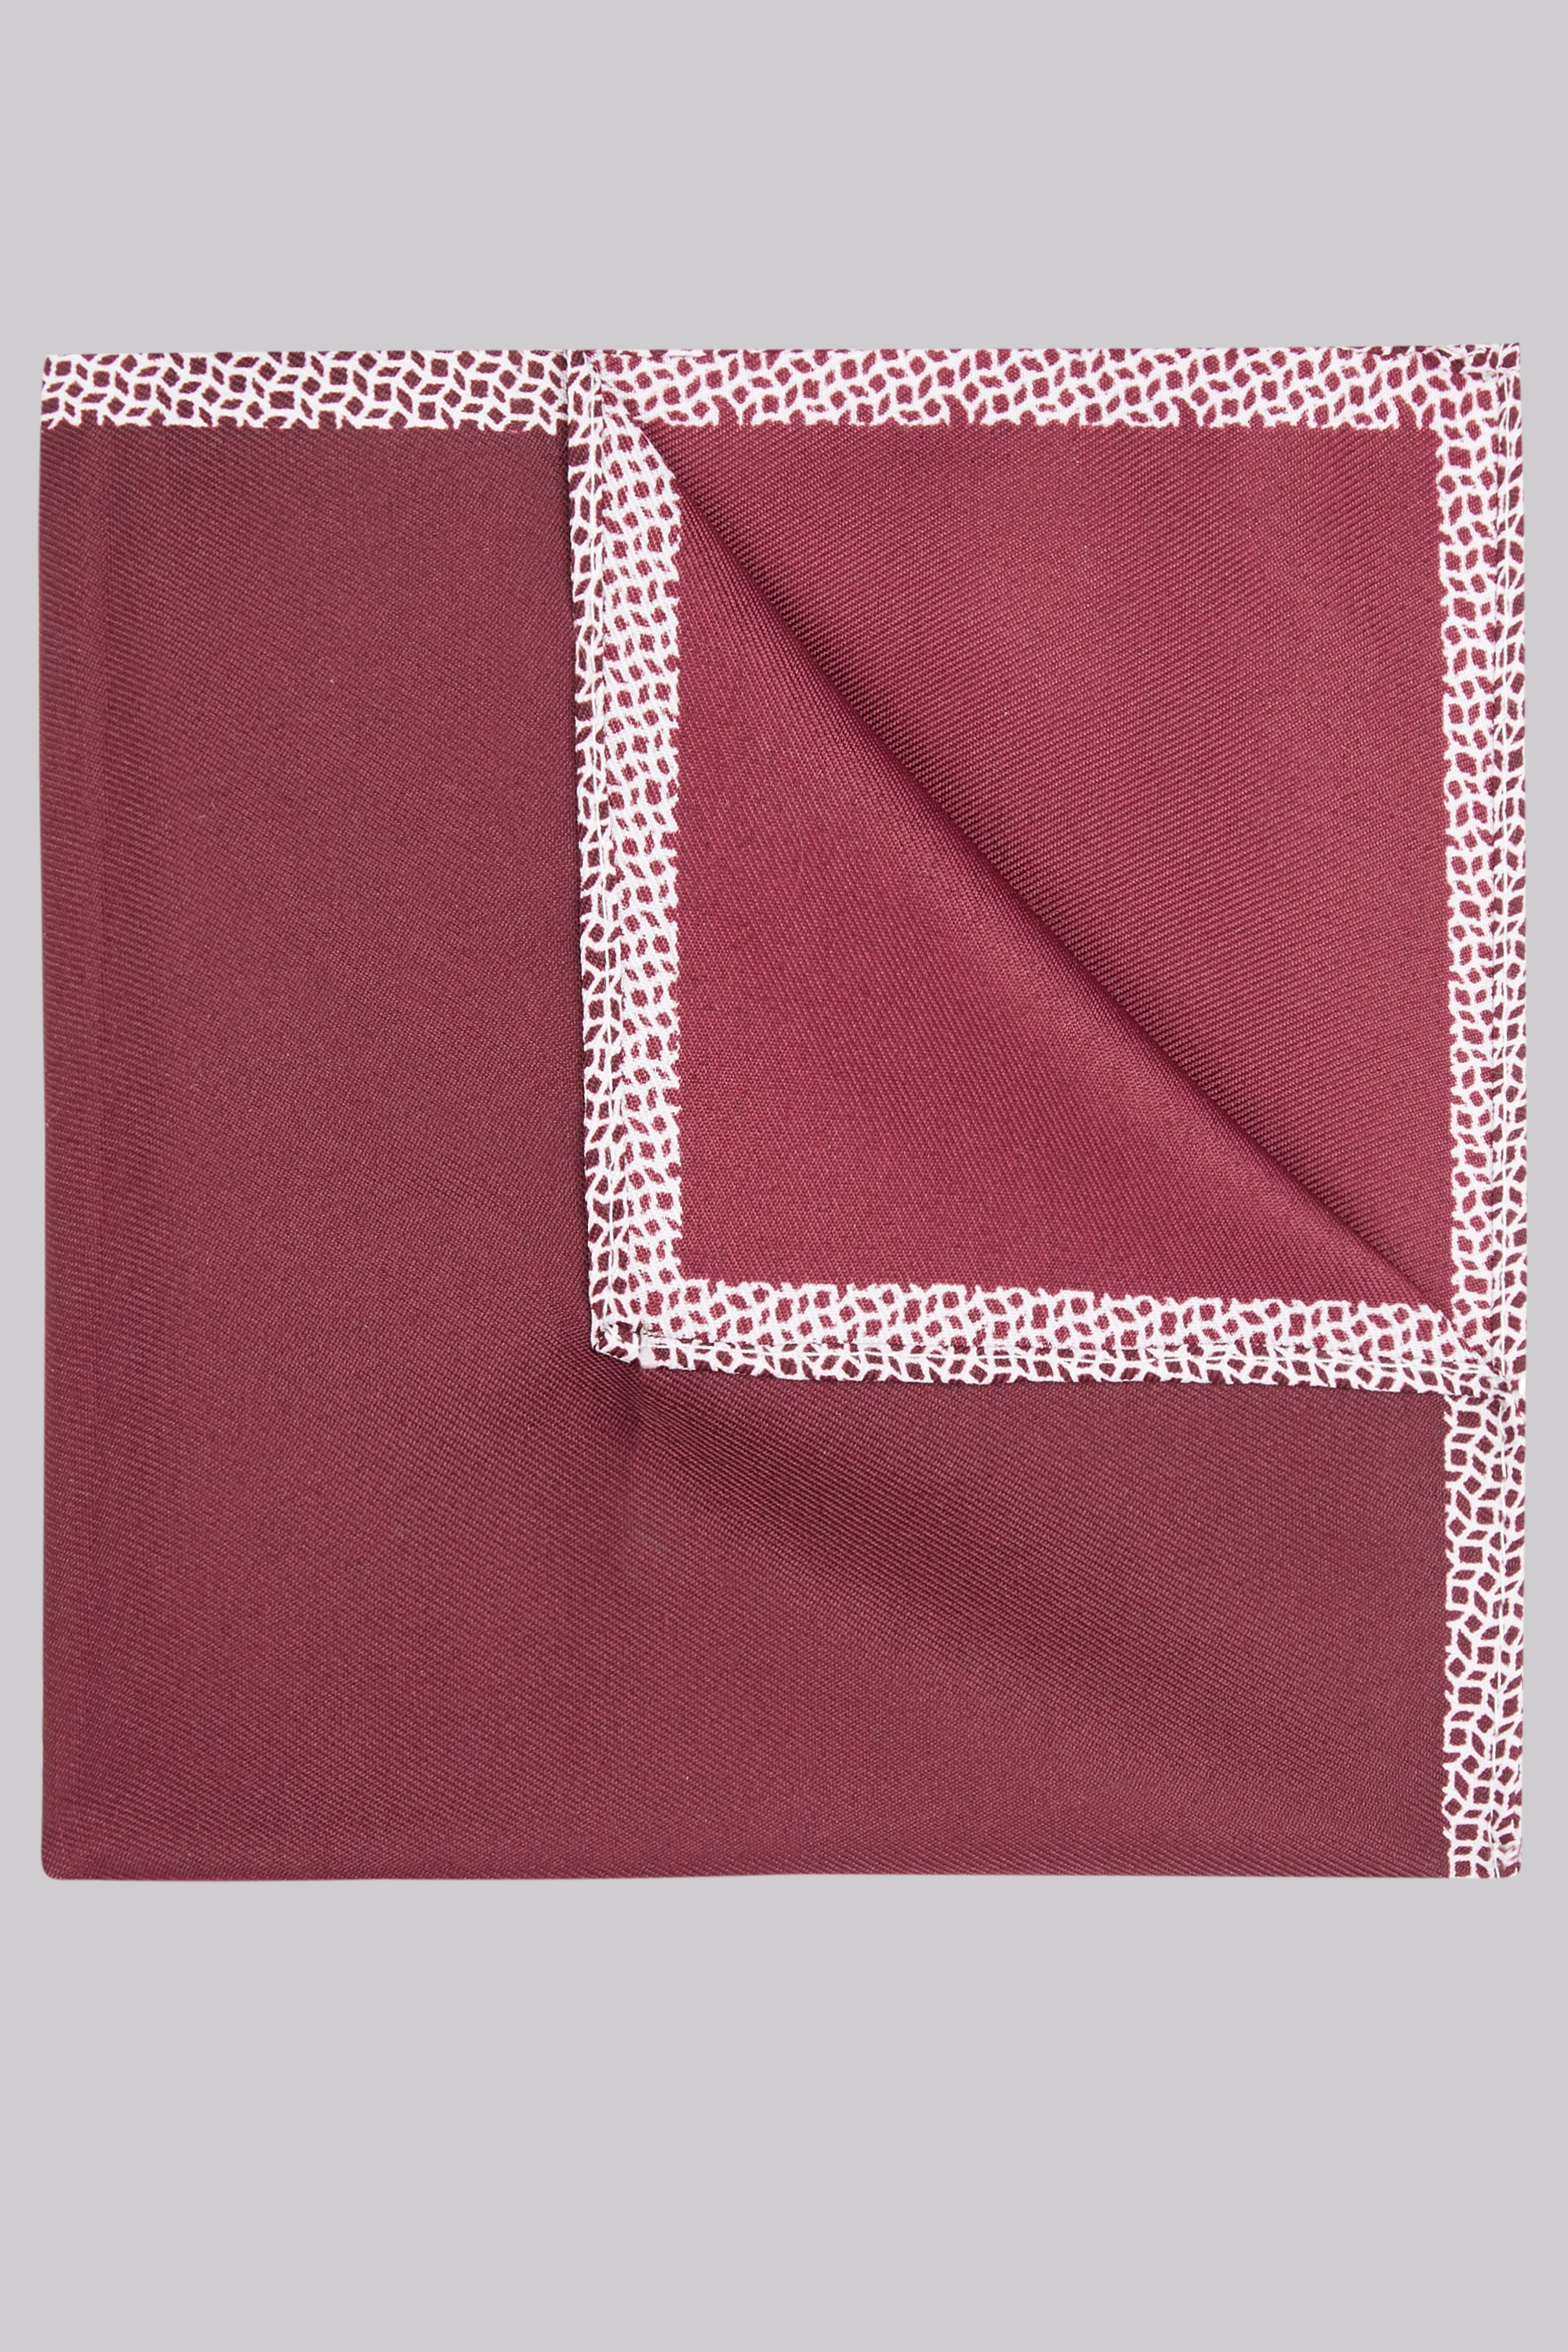 Moss Bros Moss London Wine Geo Border Pocket Square